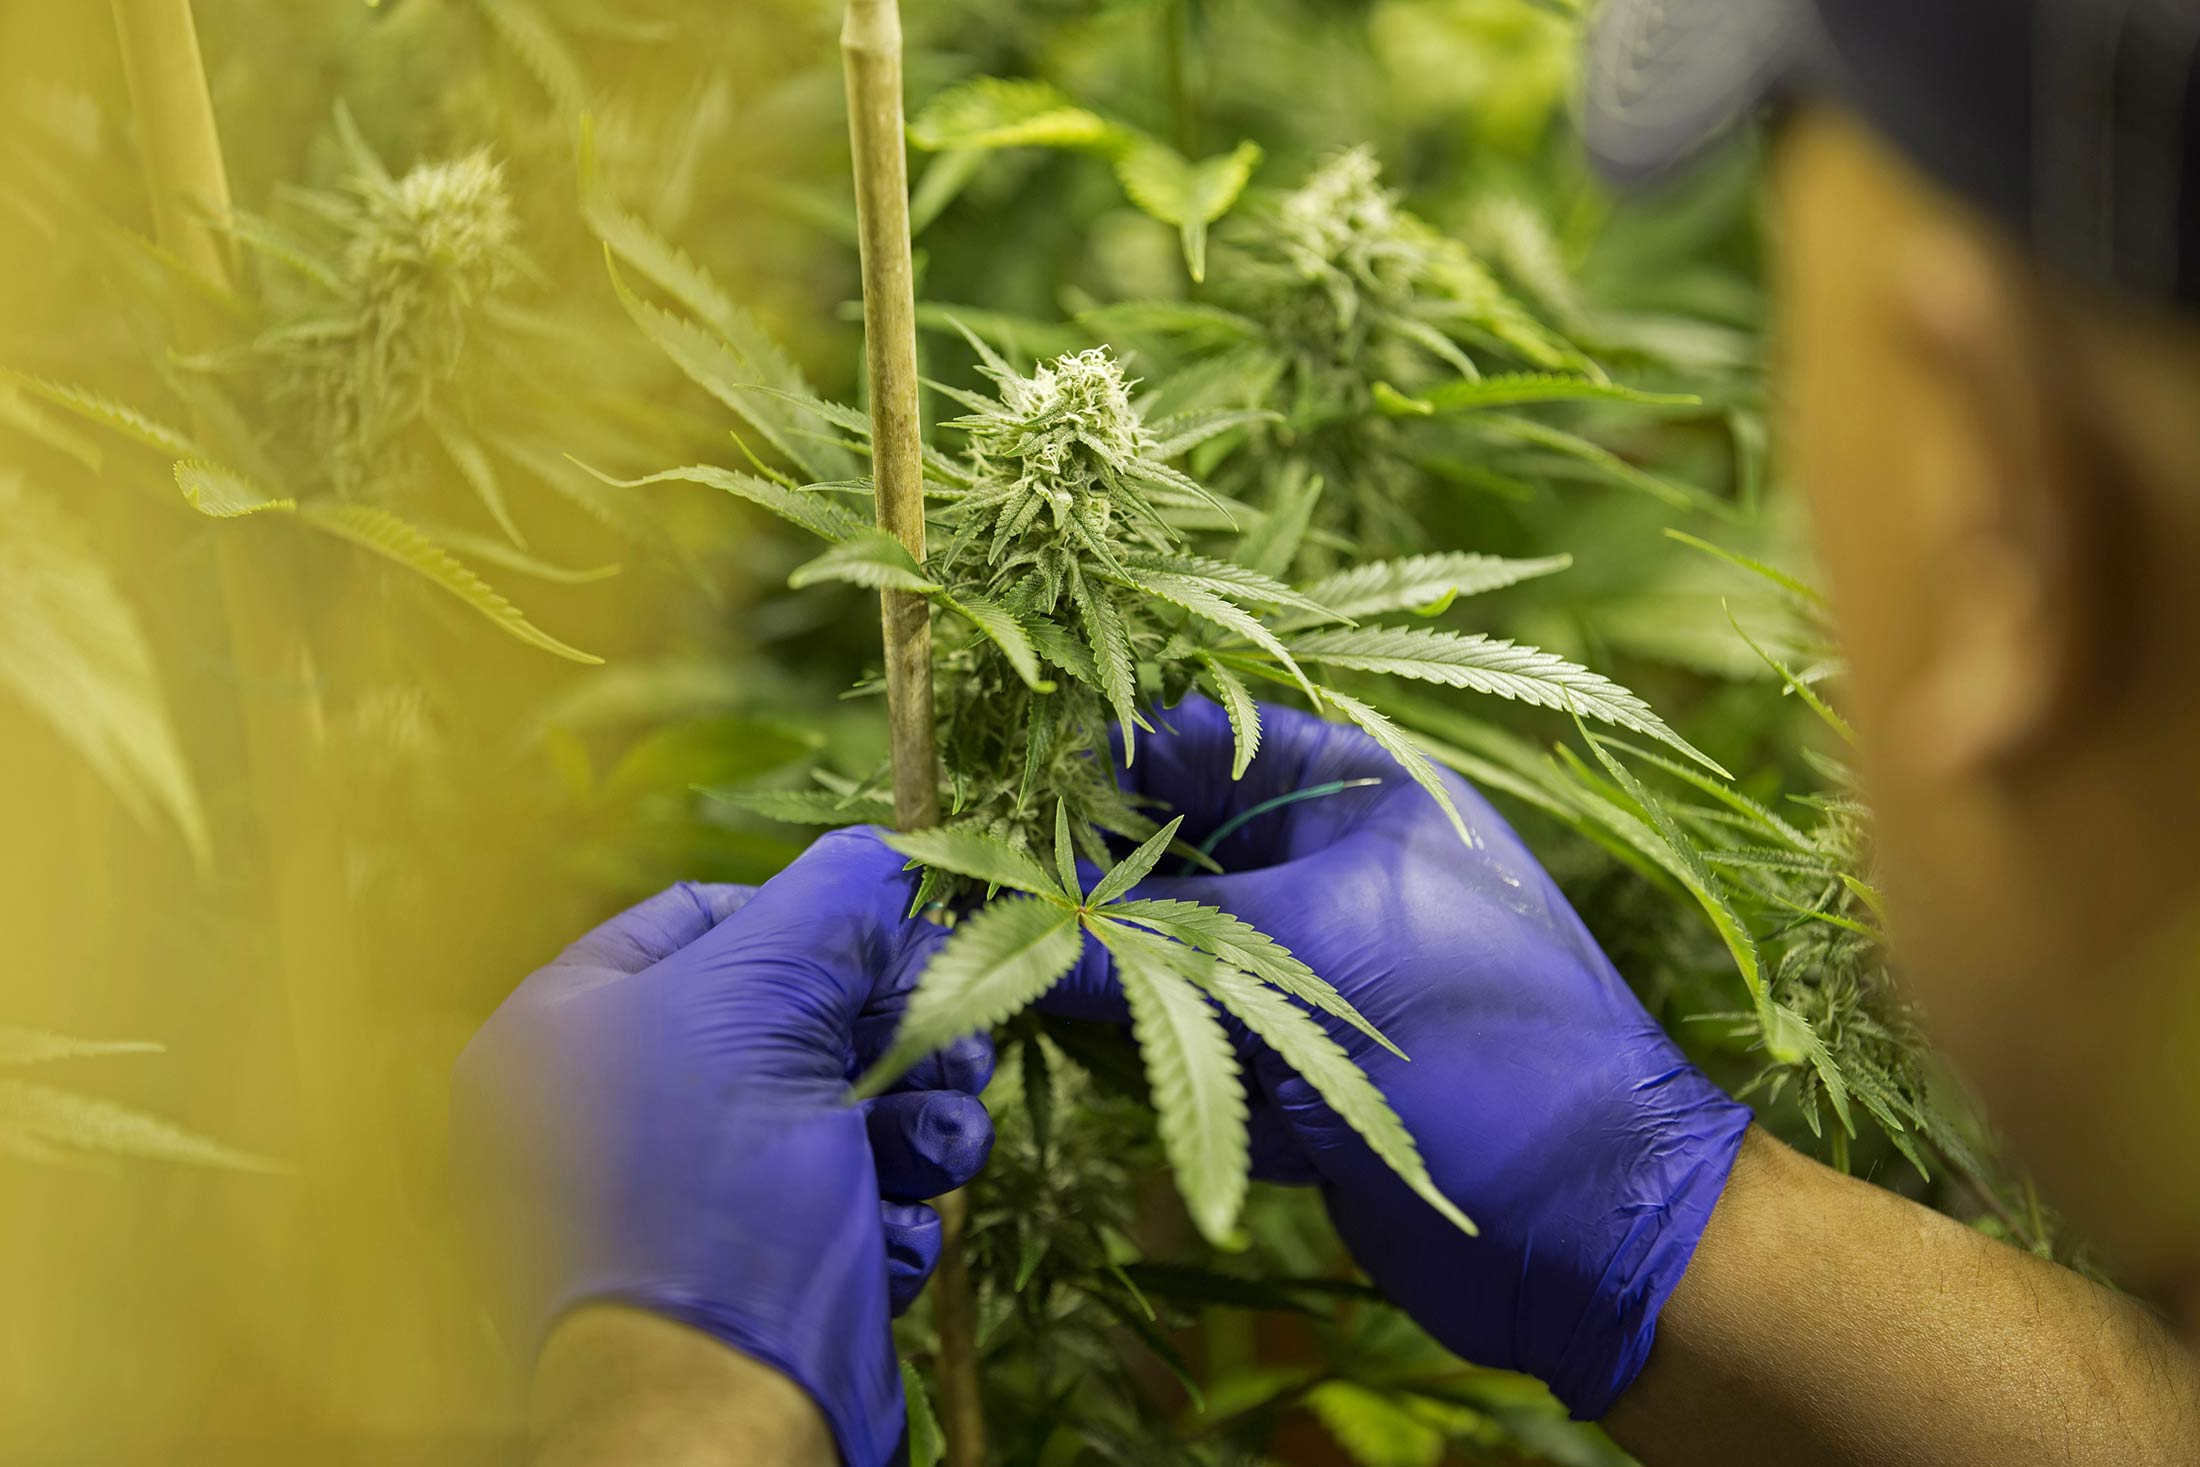 & WEED:Toronto Stock Quote - Canopy Growth Corp - Bloomberg Markets